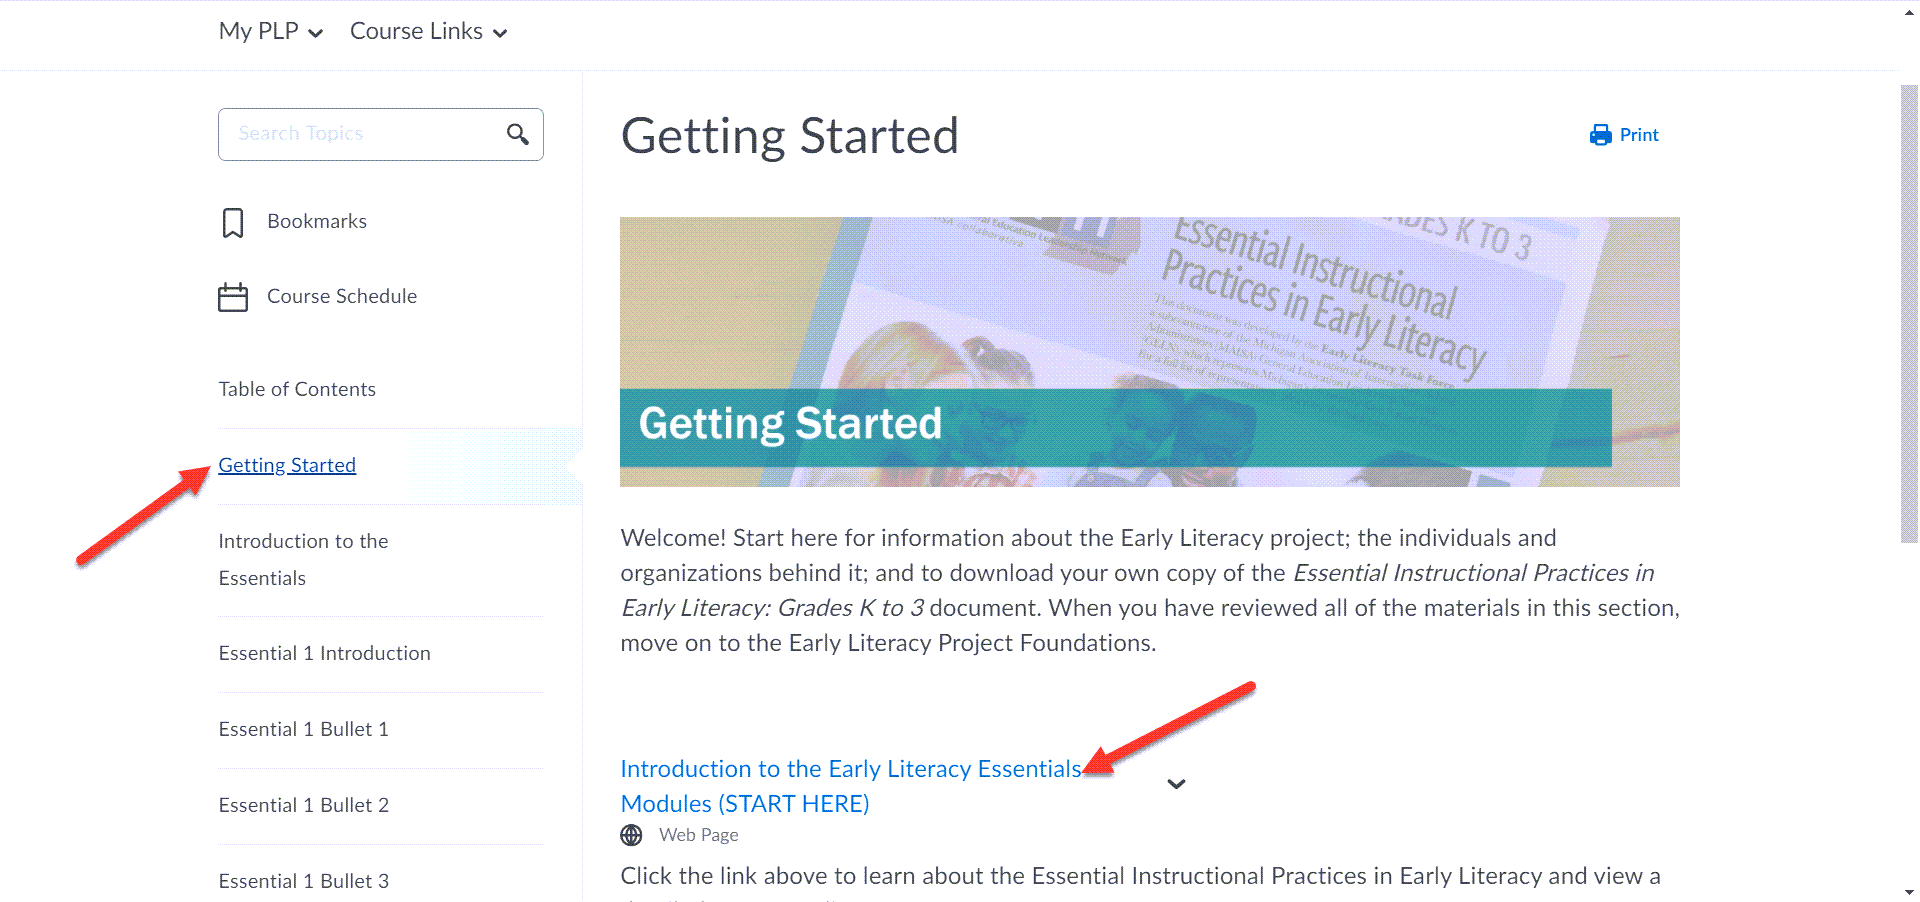 """The Getting Started page is shown with directions and welcome information. Arrows point to the """"Getting Started"""" option on the left menu and to the first linked topic below the Getting Started Introduction paragraph."""